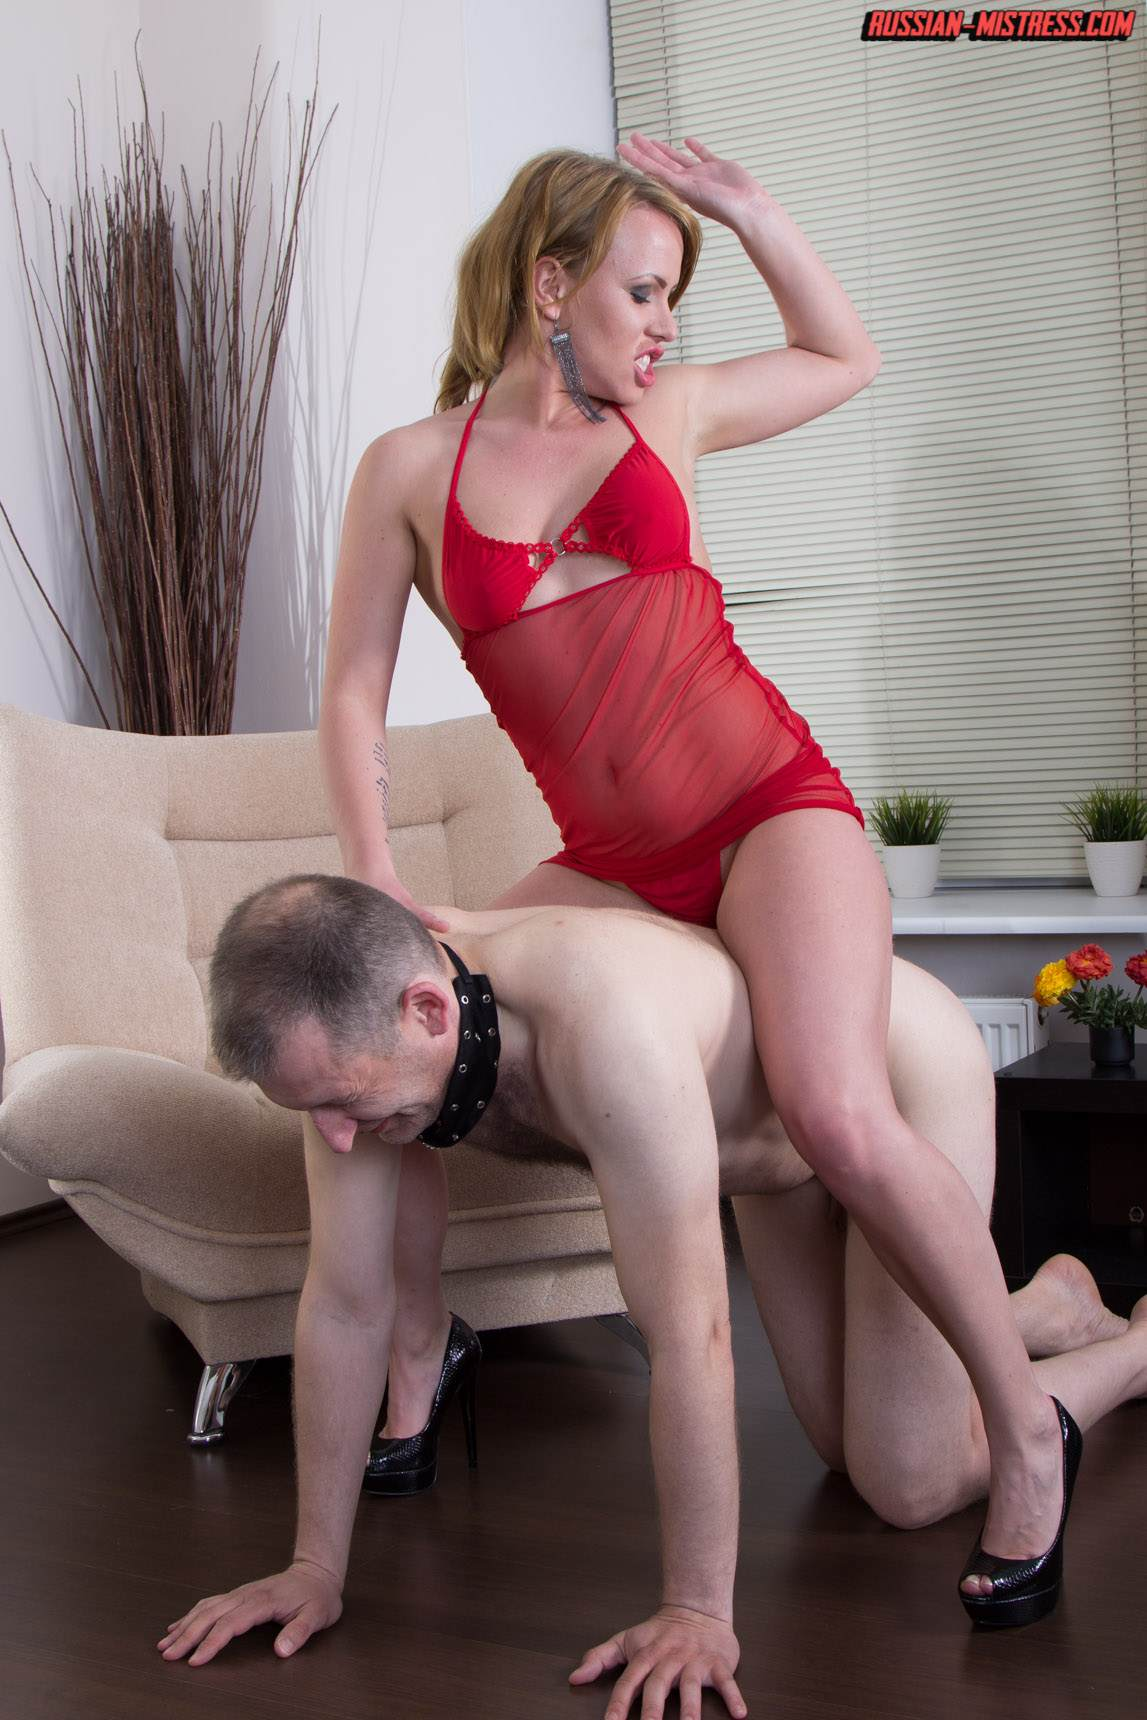 Picture #2 of Cruel bitch is loving wearing red lingerie and heels when pushing slave's face in between her butt cheeks and then peeing then over him